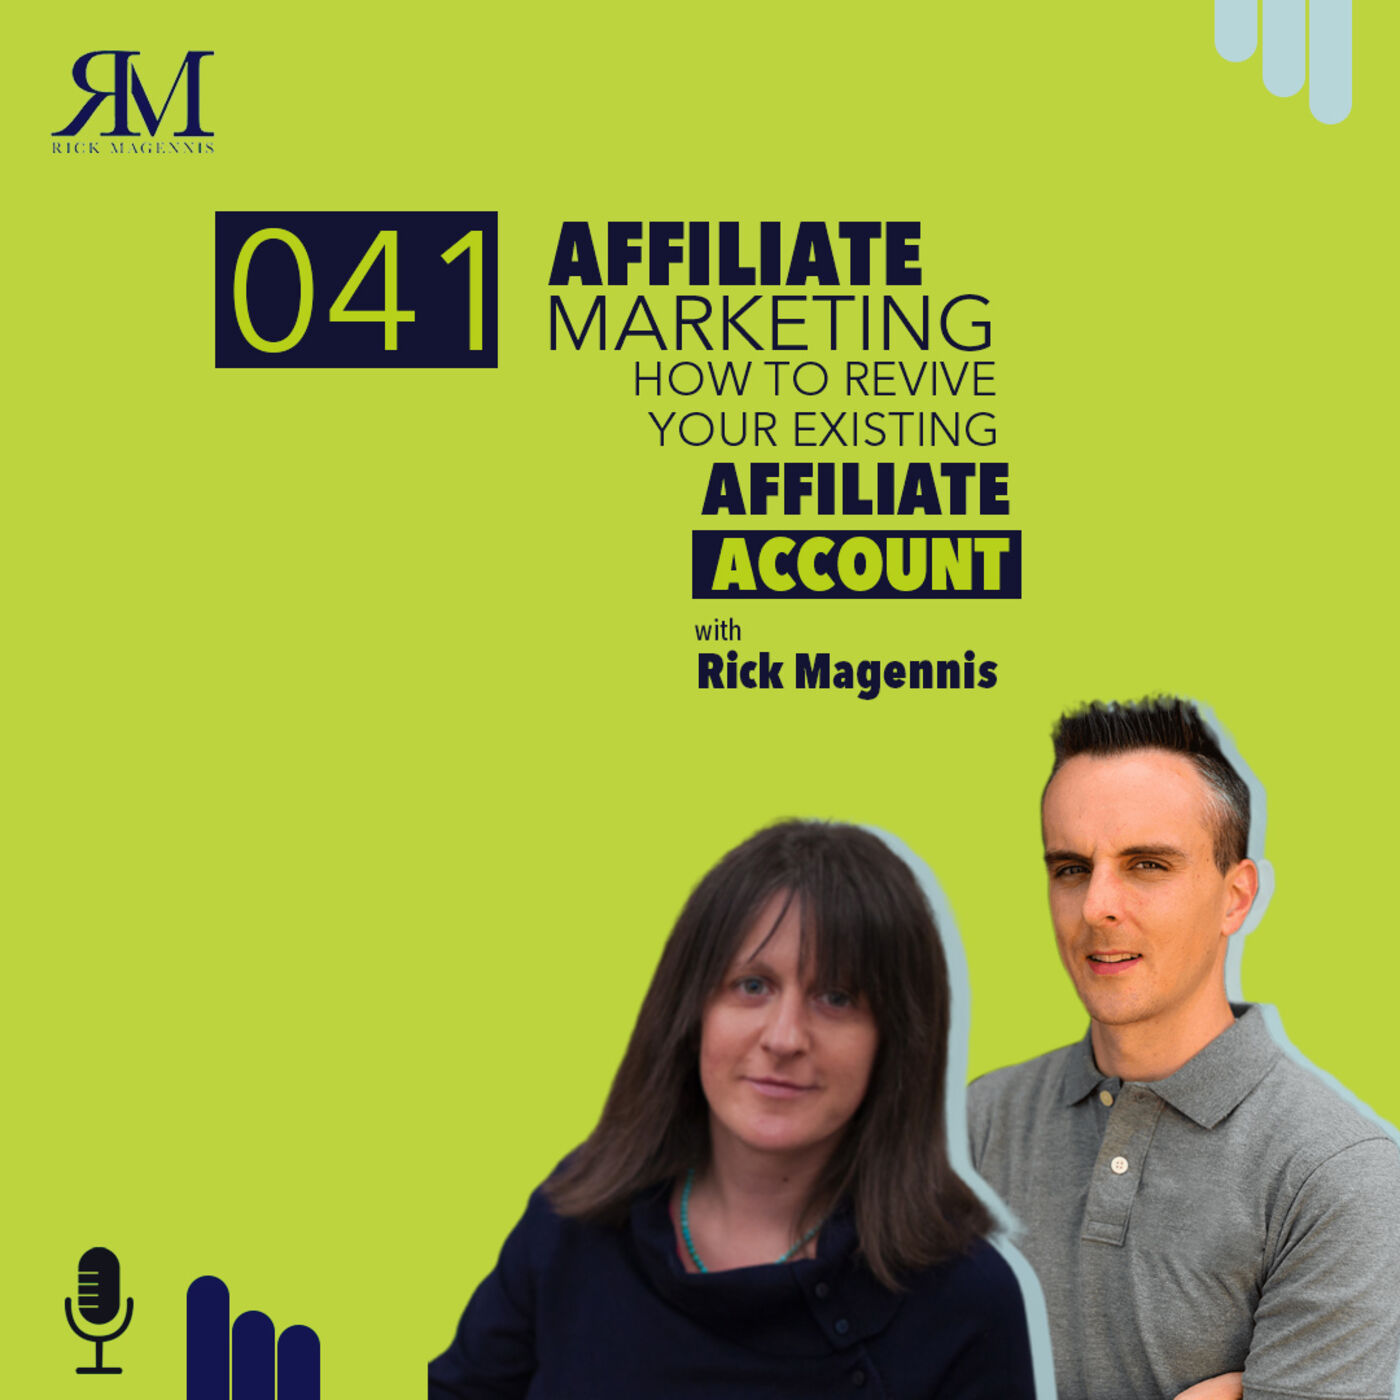 Affiliate Marketing: How to Revive Your Existing Affiliate Account with Rick Magennis